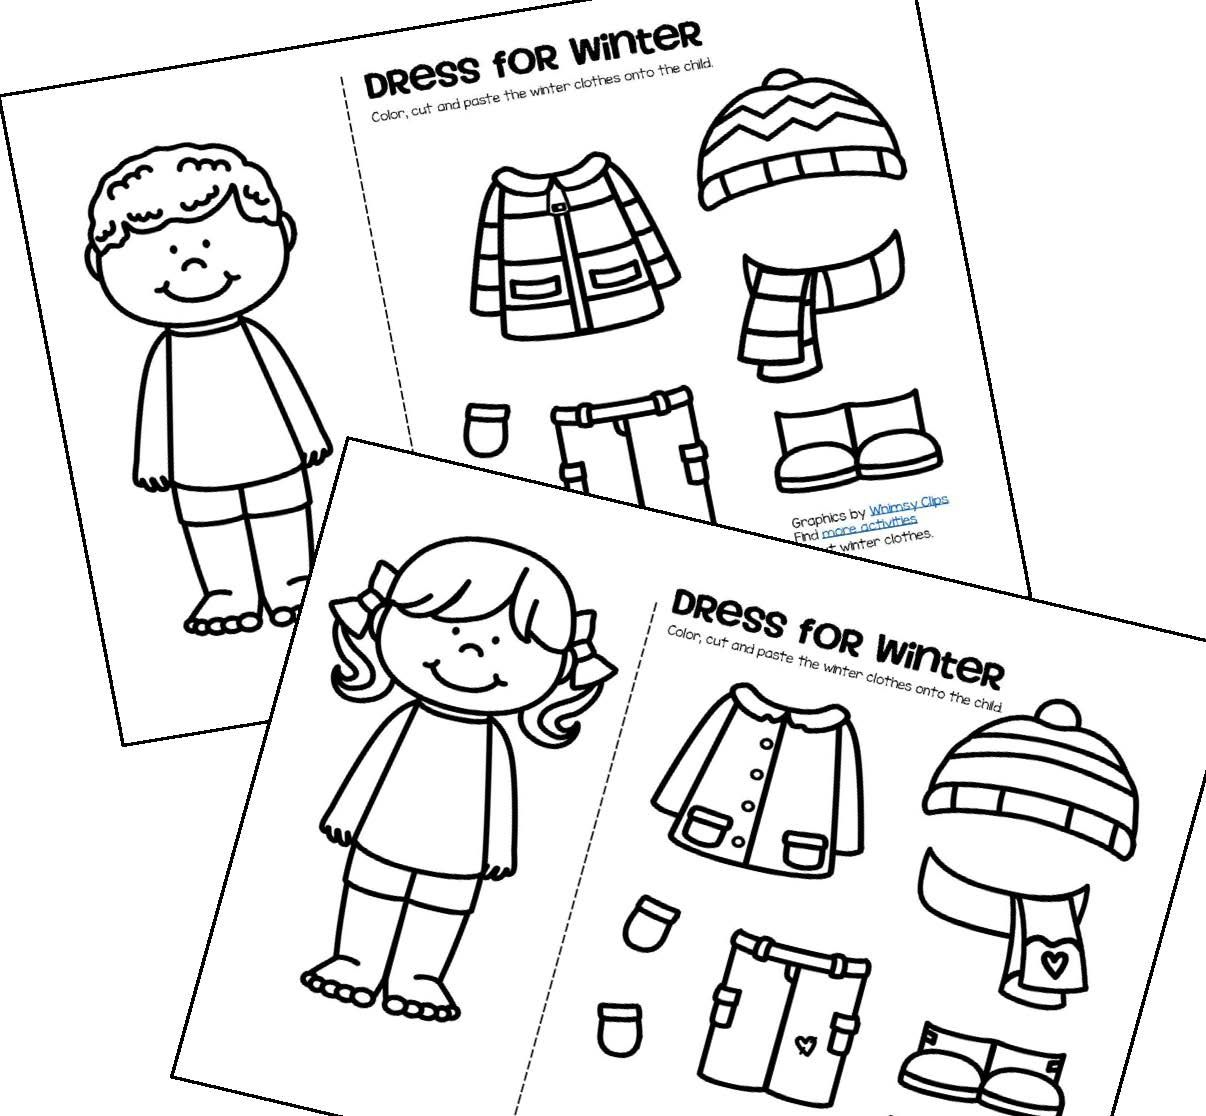 Free Color Cut And Paste The Winter Clothes Onto The Girl And Boy